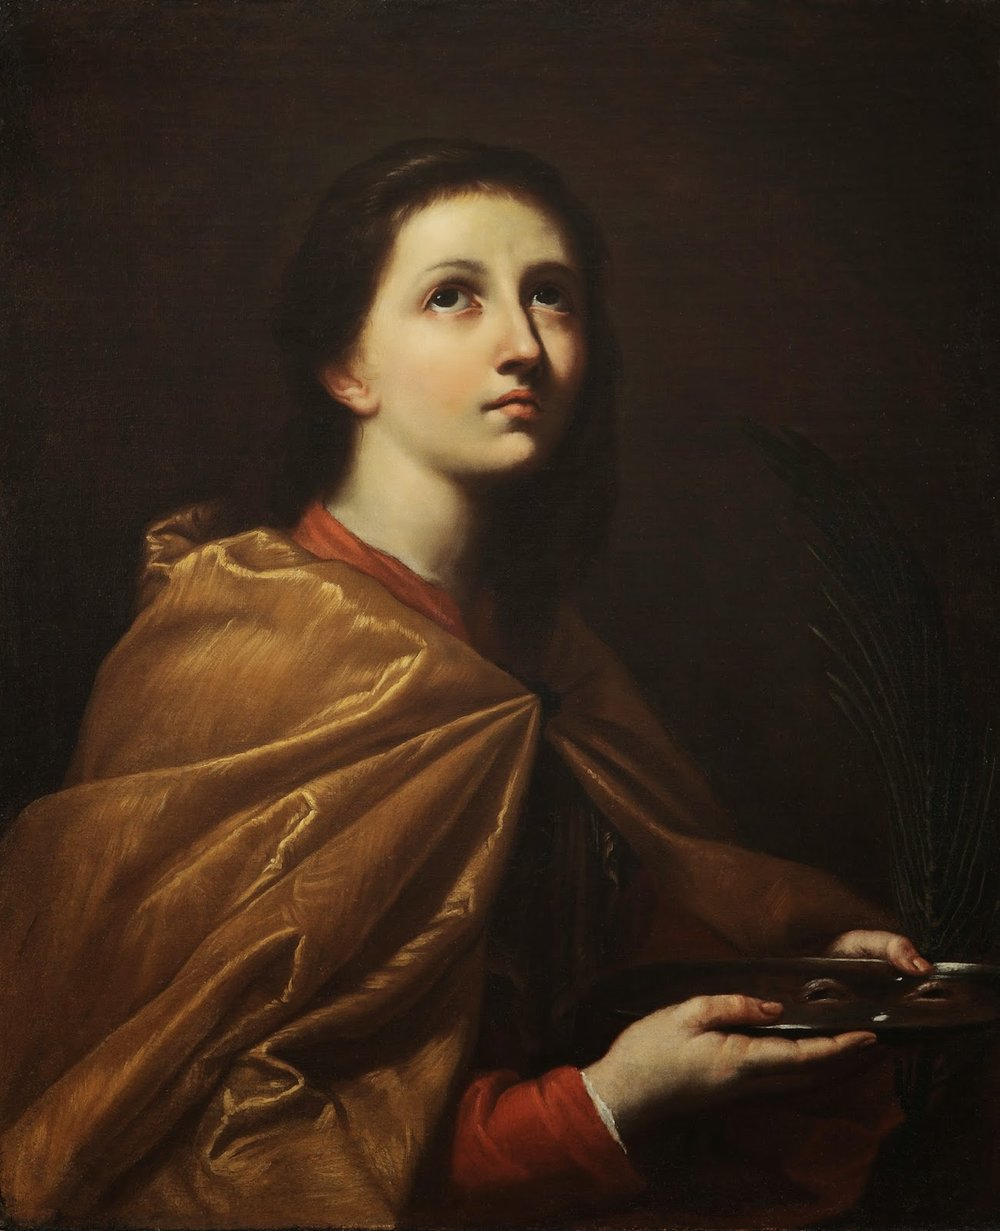 Robert Simon Fine Art is pleased to announce its recent sale of Giovanni Do's St. Lucy (Santa Lucia) -